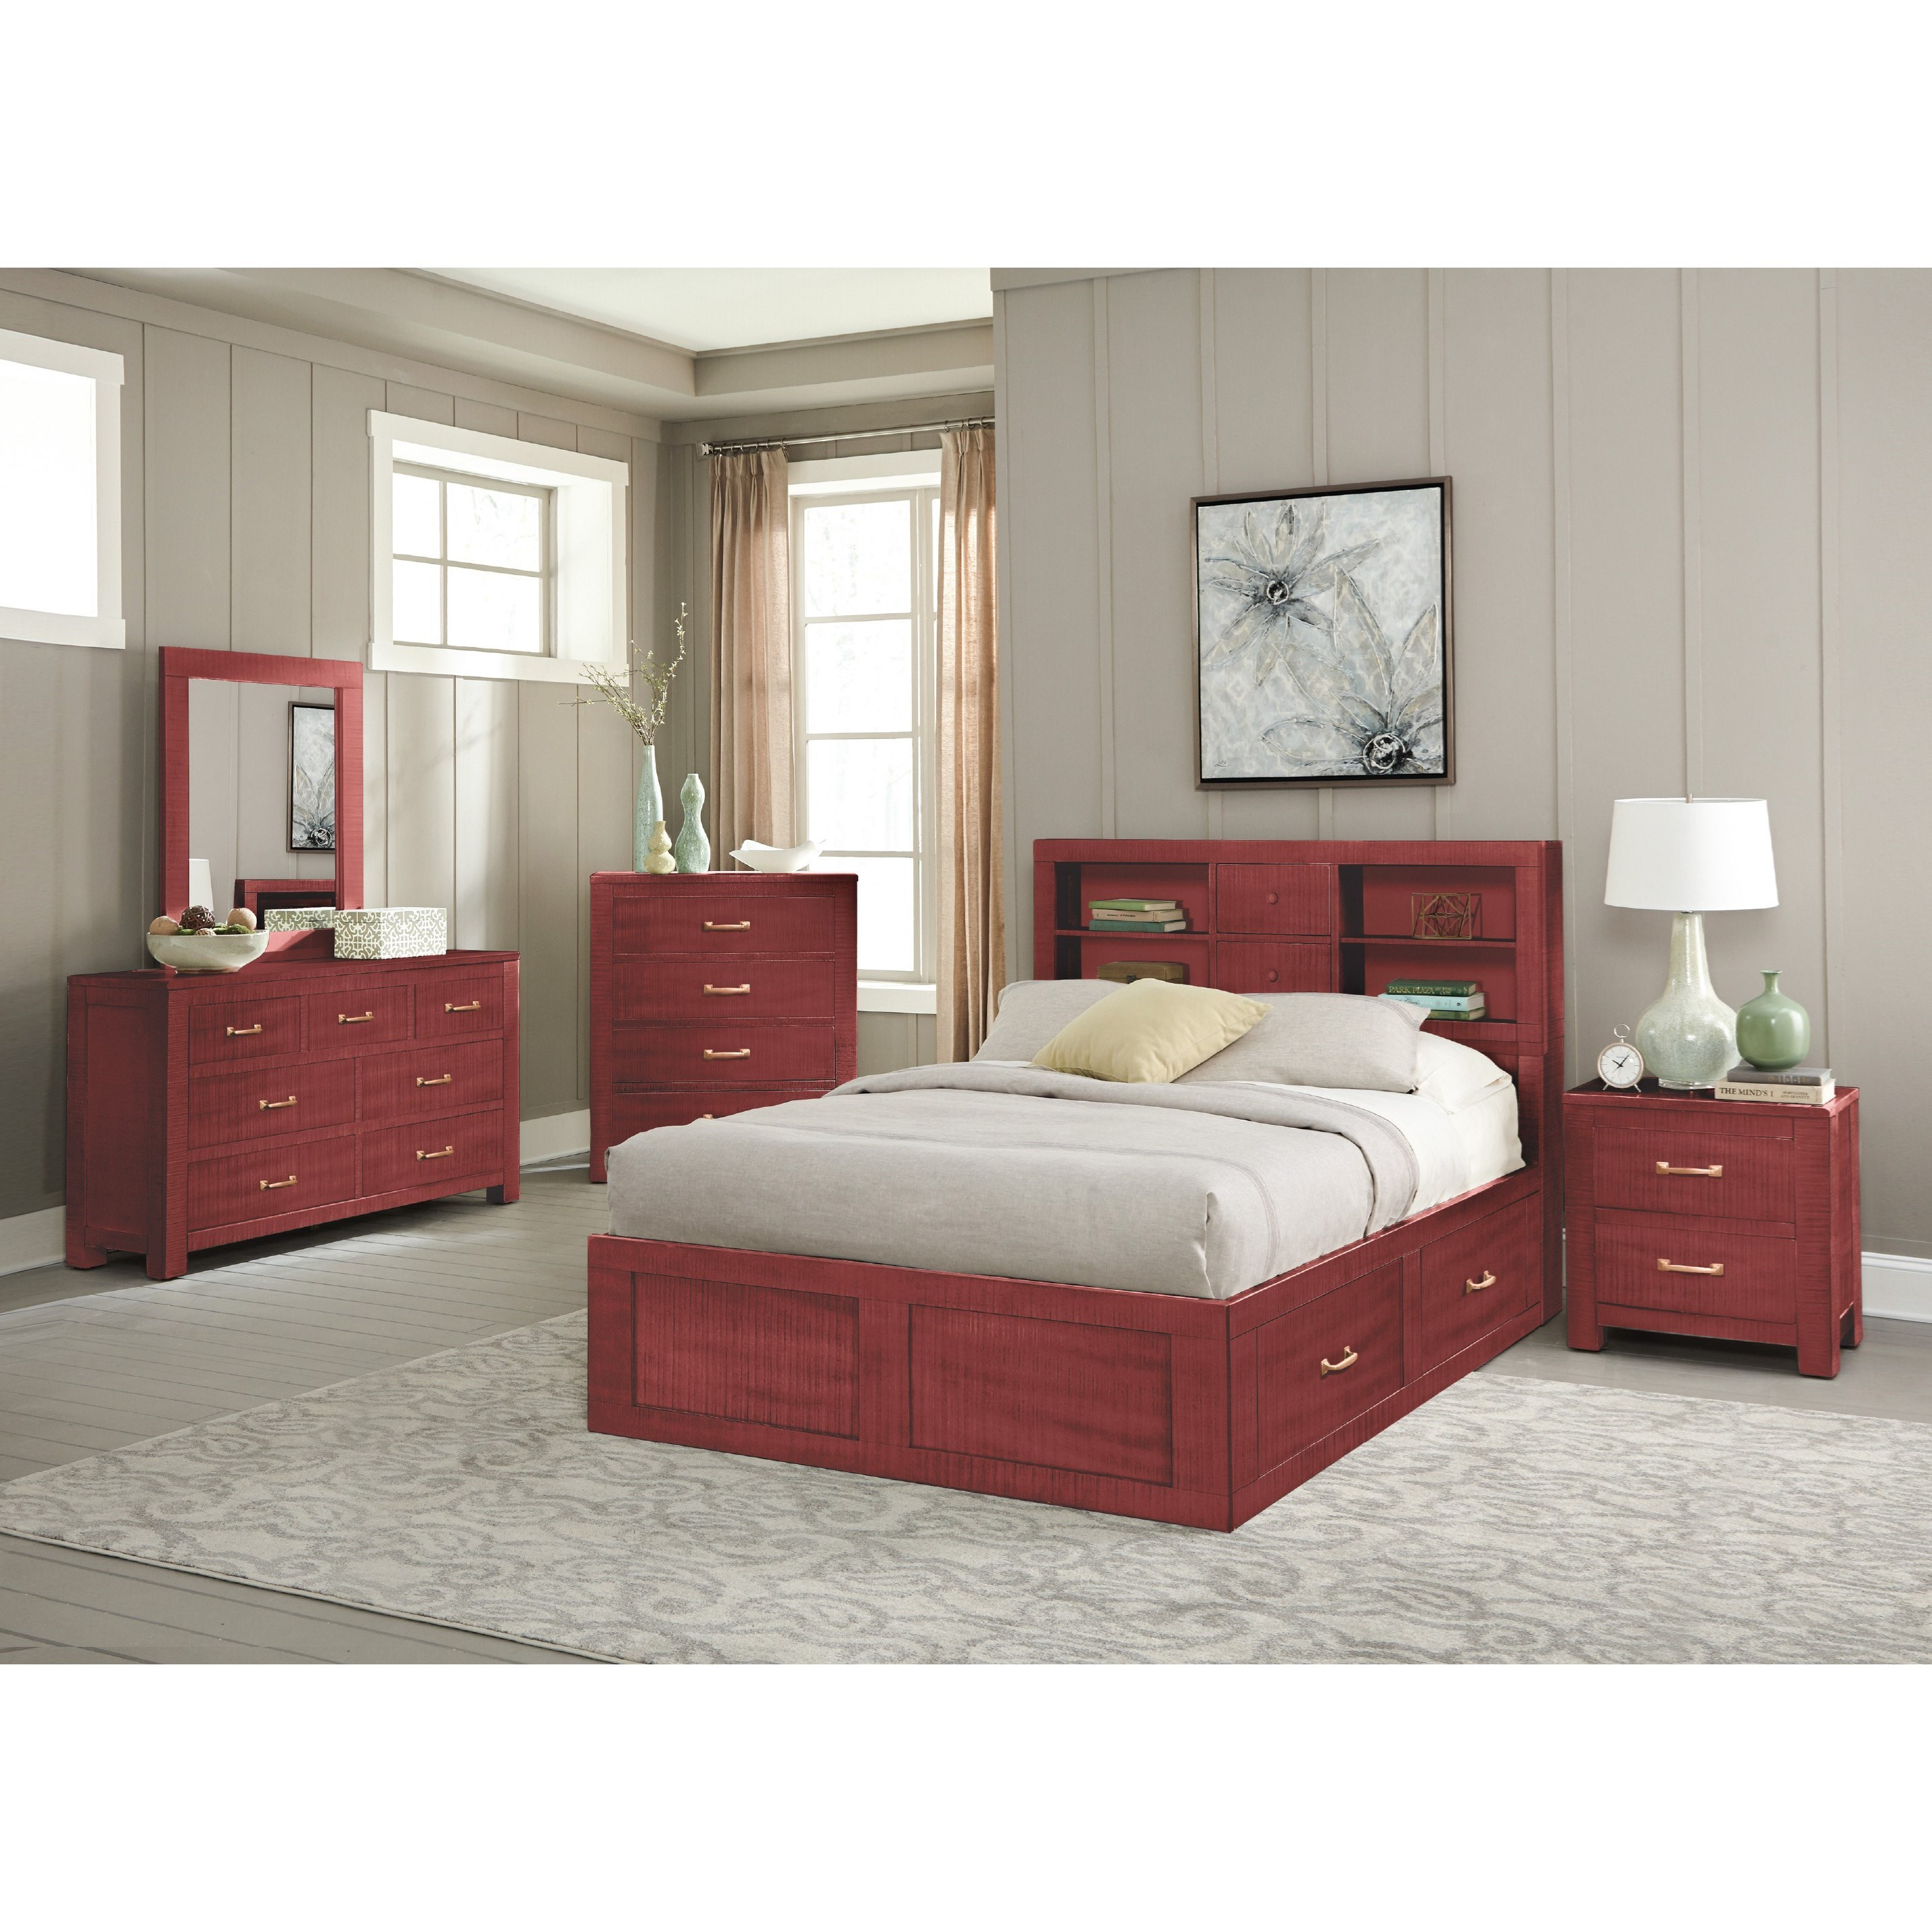 2319 Twin Bedroom Group by Sunny Designs at Factory Direct Furniture